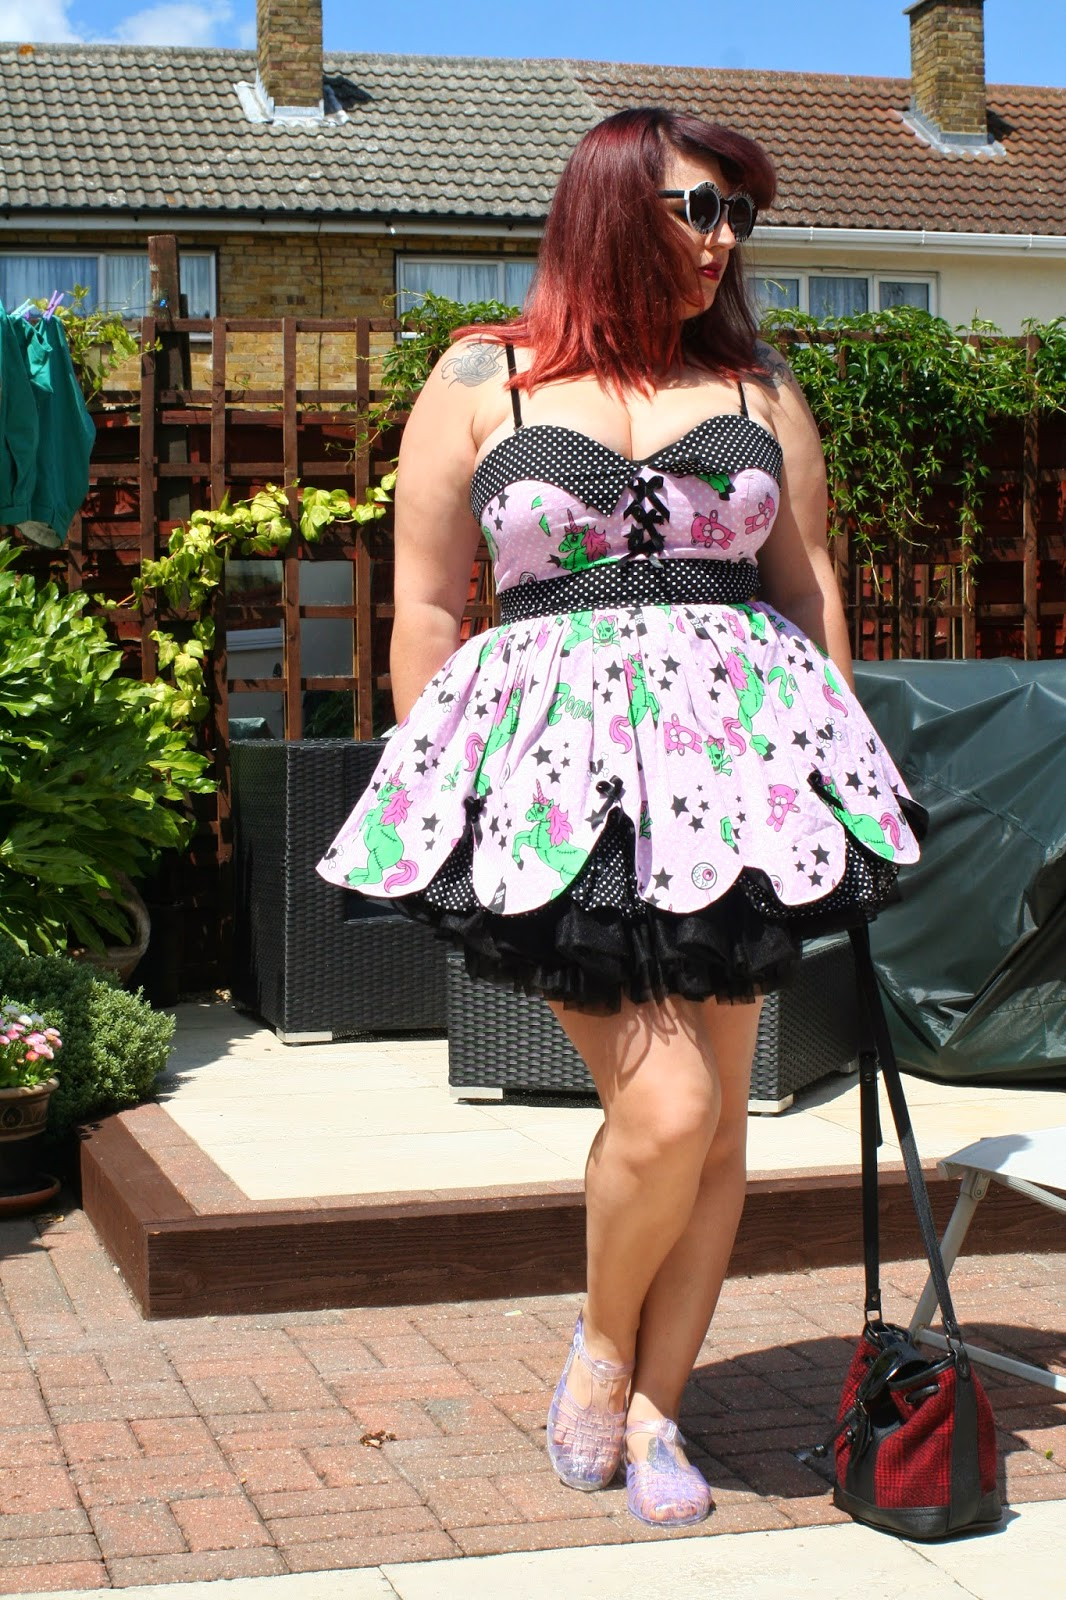 51a8e9058ca9 Dress: Hell Bunny (similar here and here)